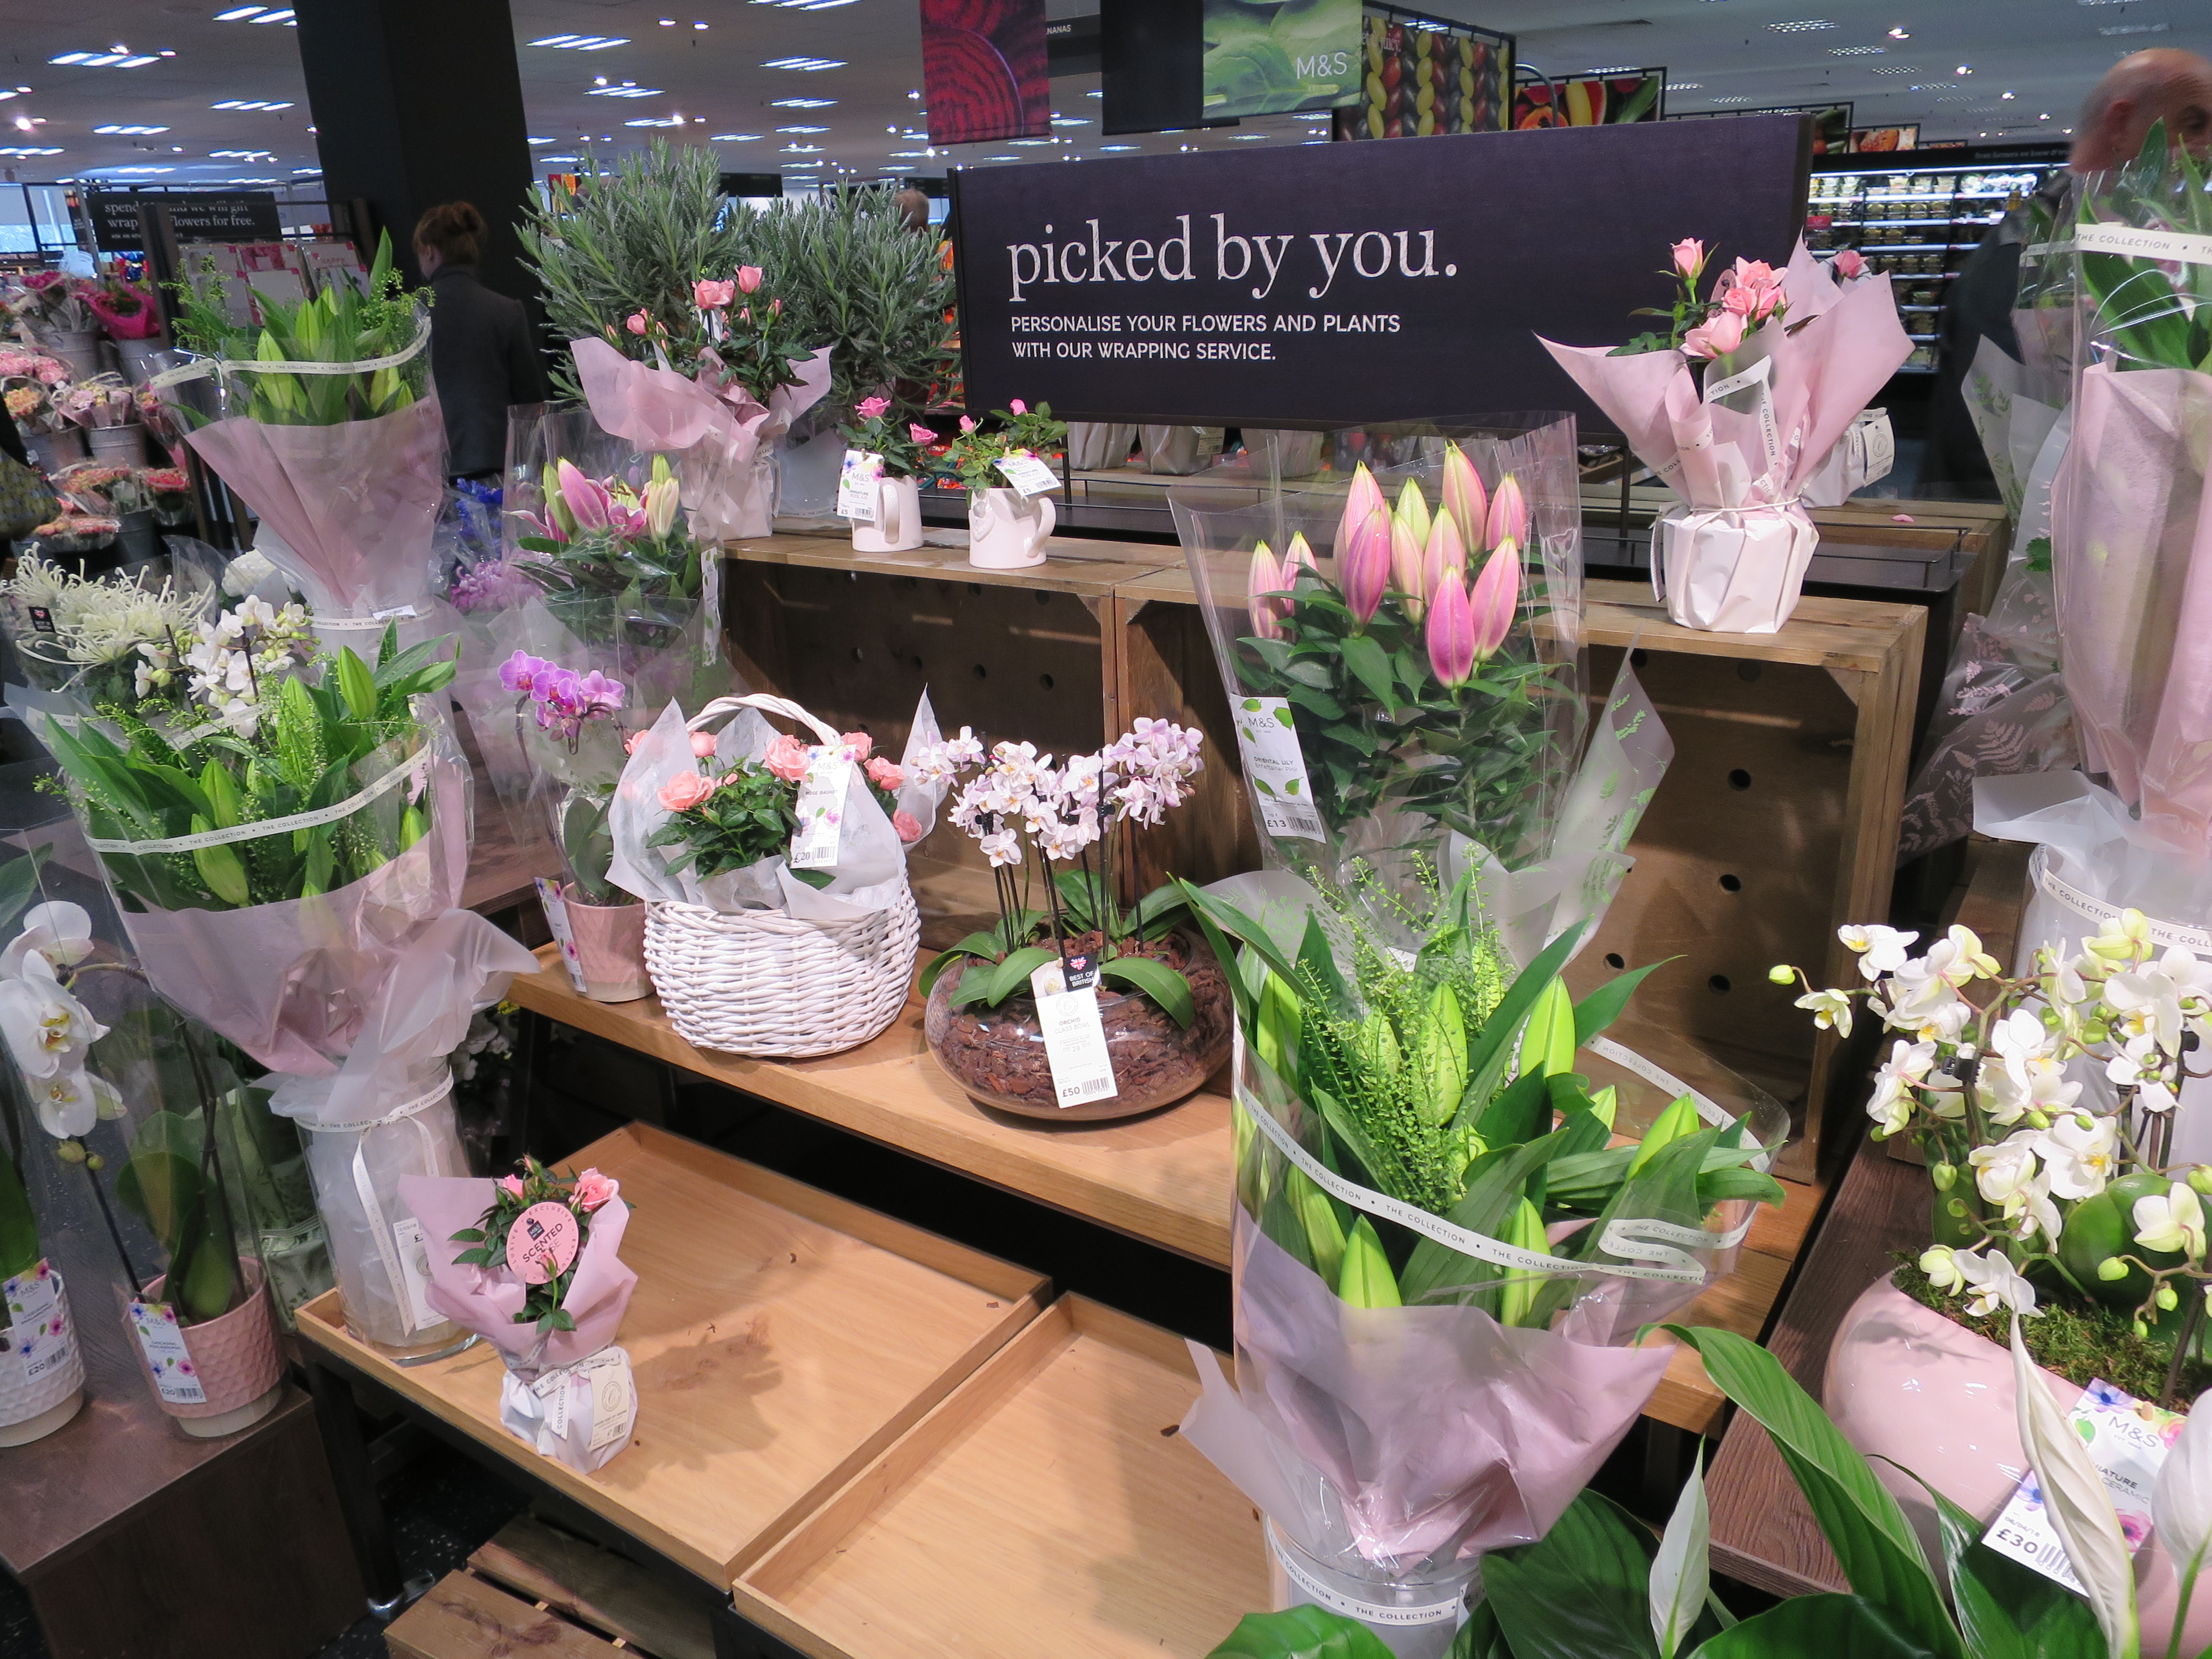 Flower shop near me marks and soencers flowers flower shop marks and soencers flowers the flowers are very beautiful here we provide a collections of various pictures of beautiful flowers charming izmirmasajfo